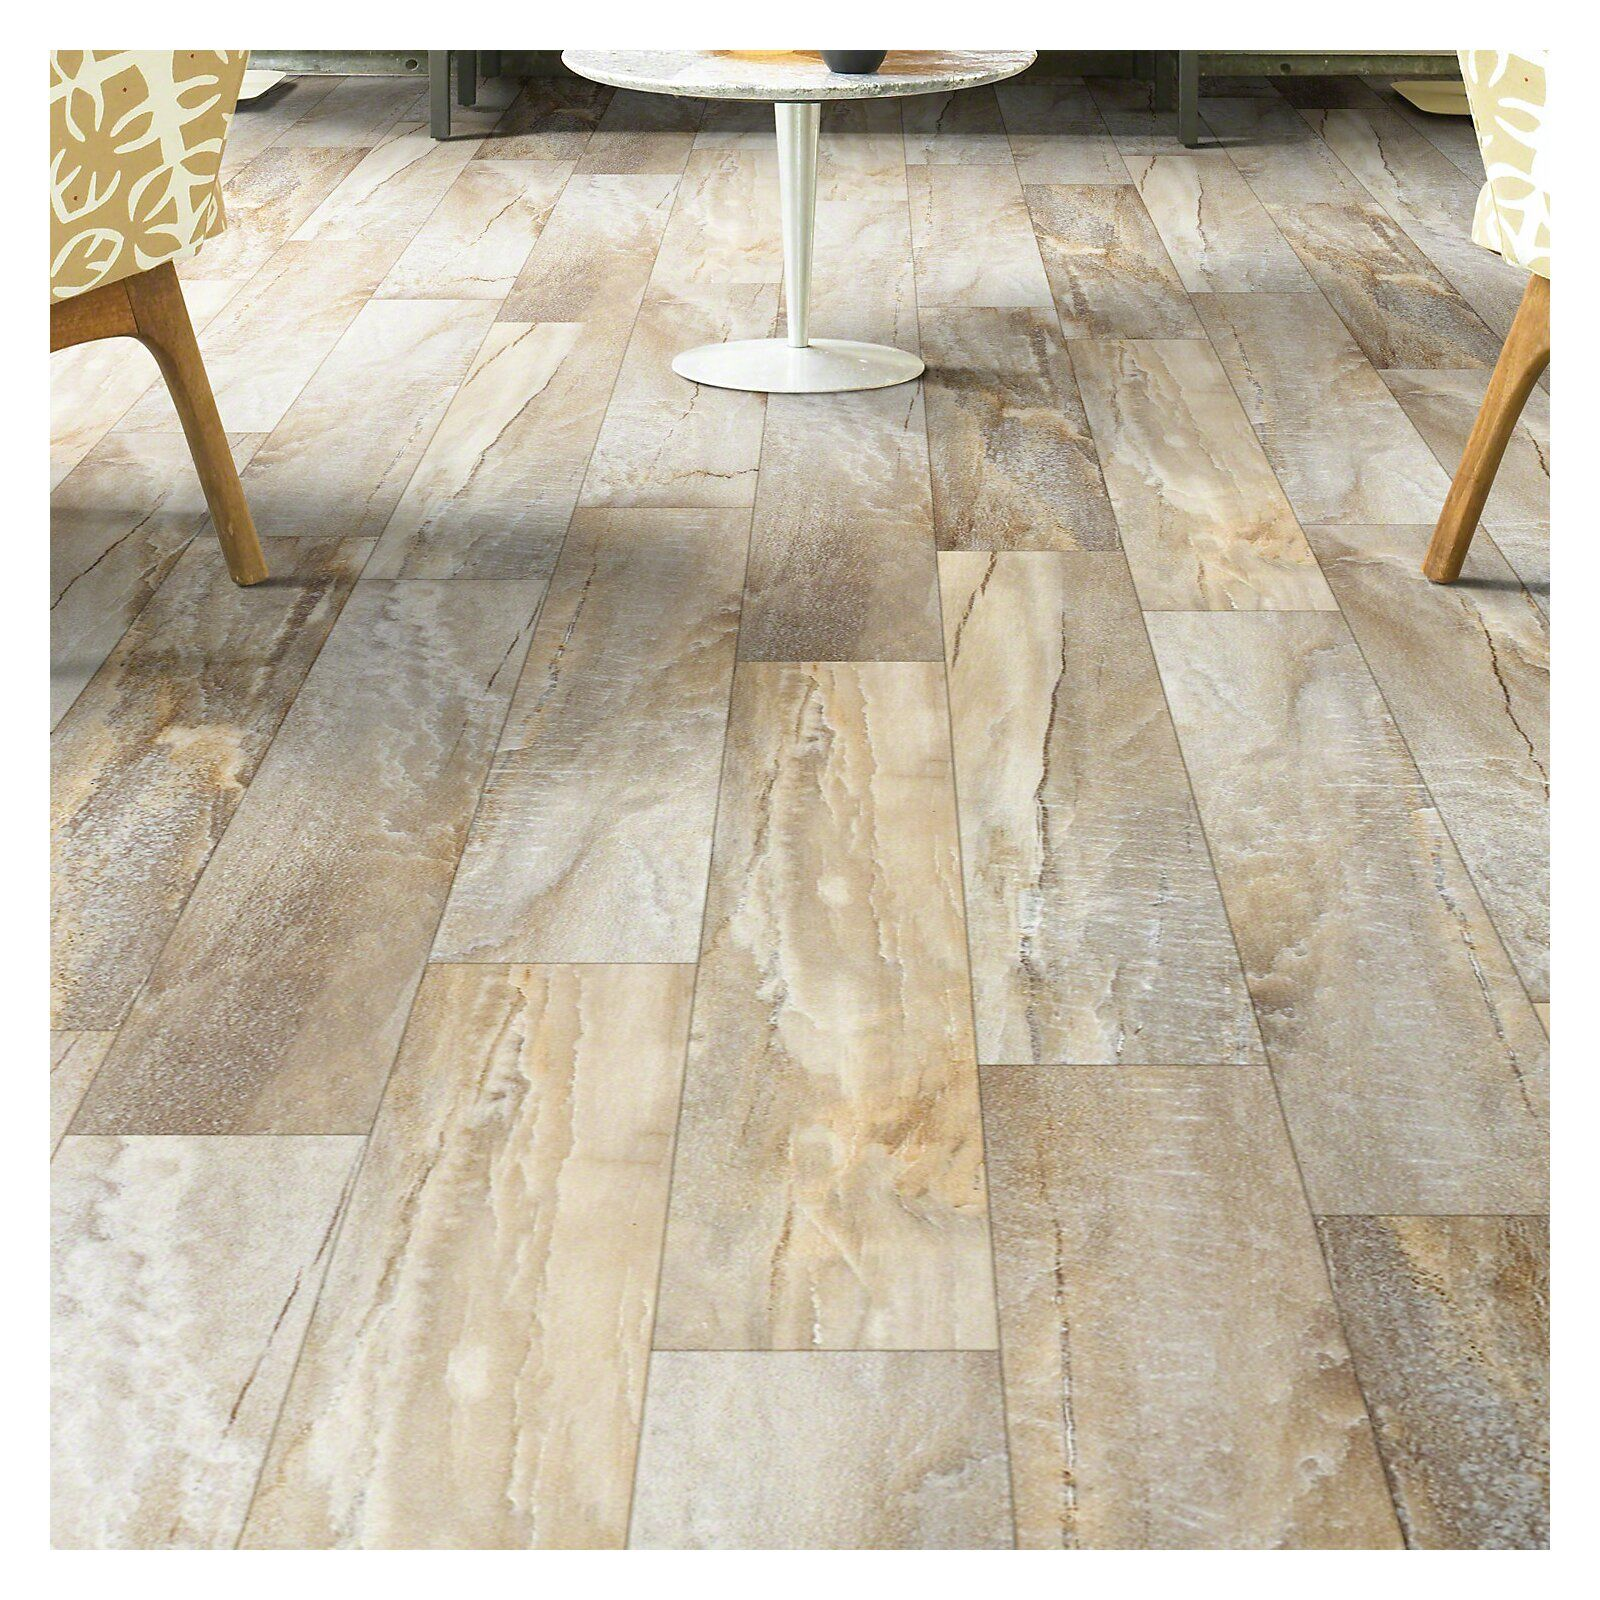 Shaw Floors Elemental Supreme 6 X 36 X 4mm Luxury Vinyl Plank Wayfair Floating Vinyl Flooring Luxury Vinyl Plank Vinyl Plank